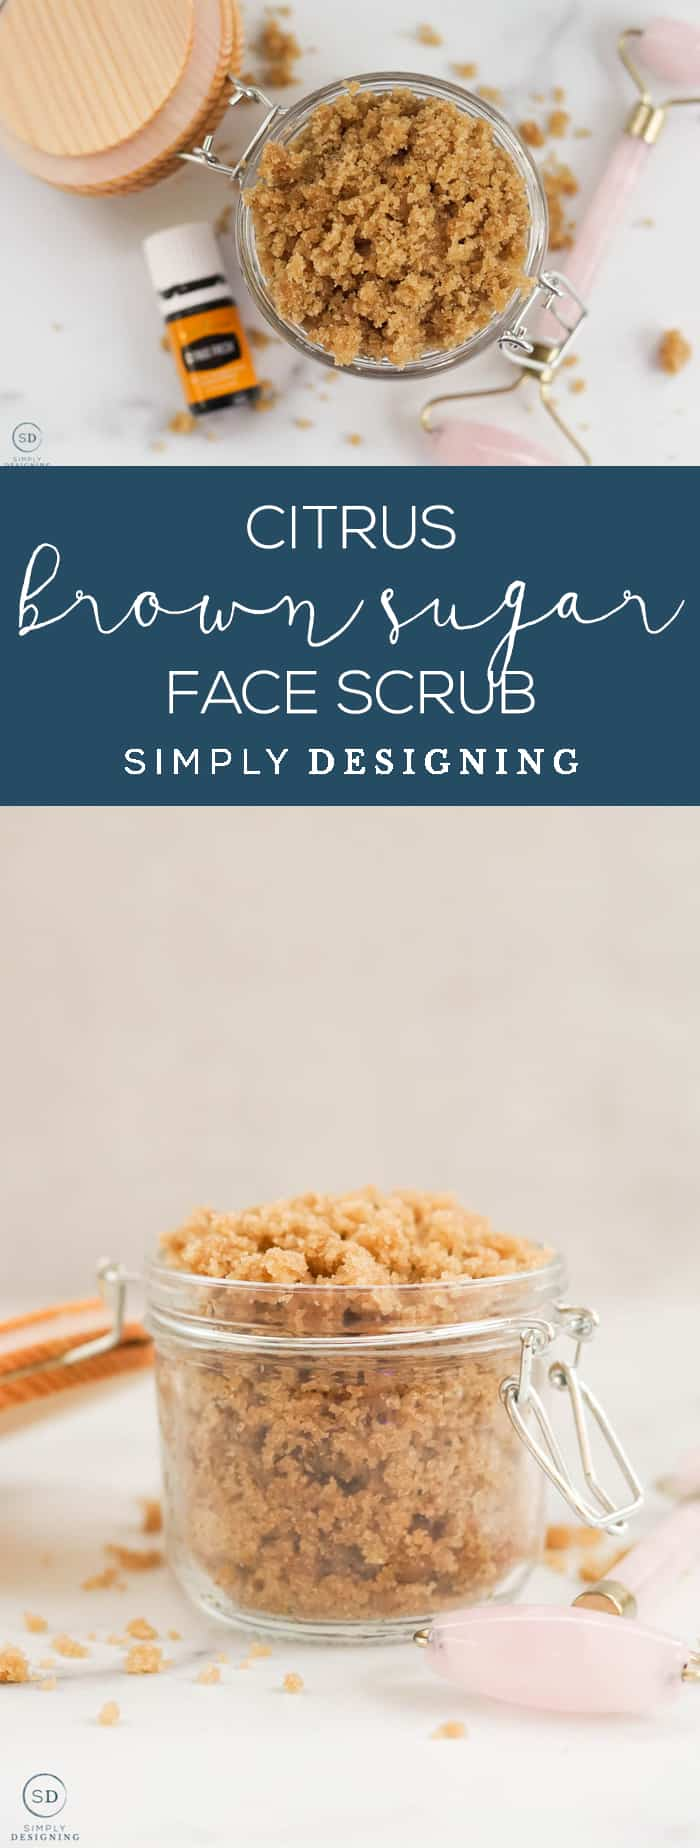 This citrus brown sugar face scrub is a natural way to exfoliate your skin from the comfort of your own home